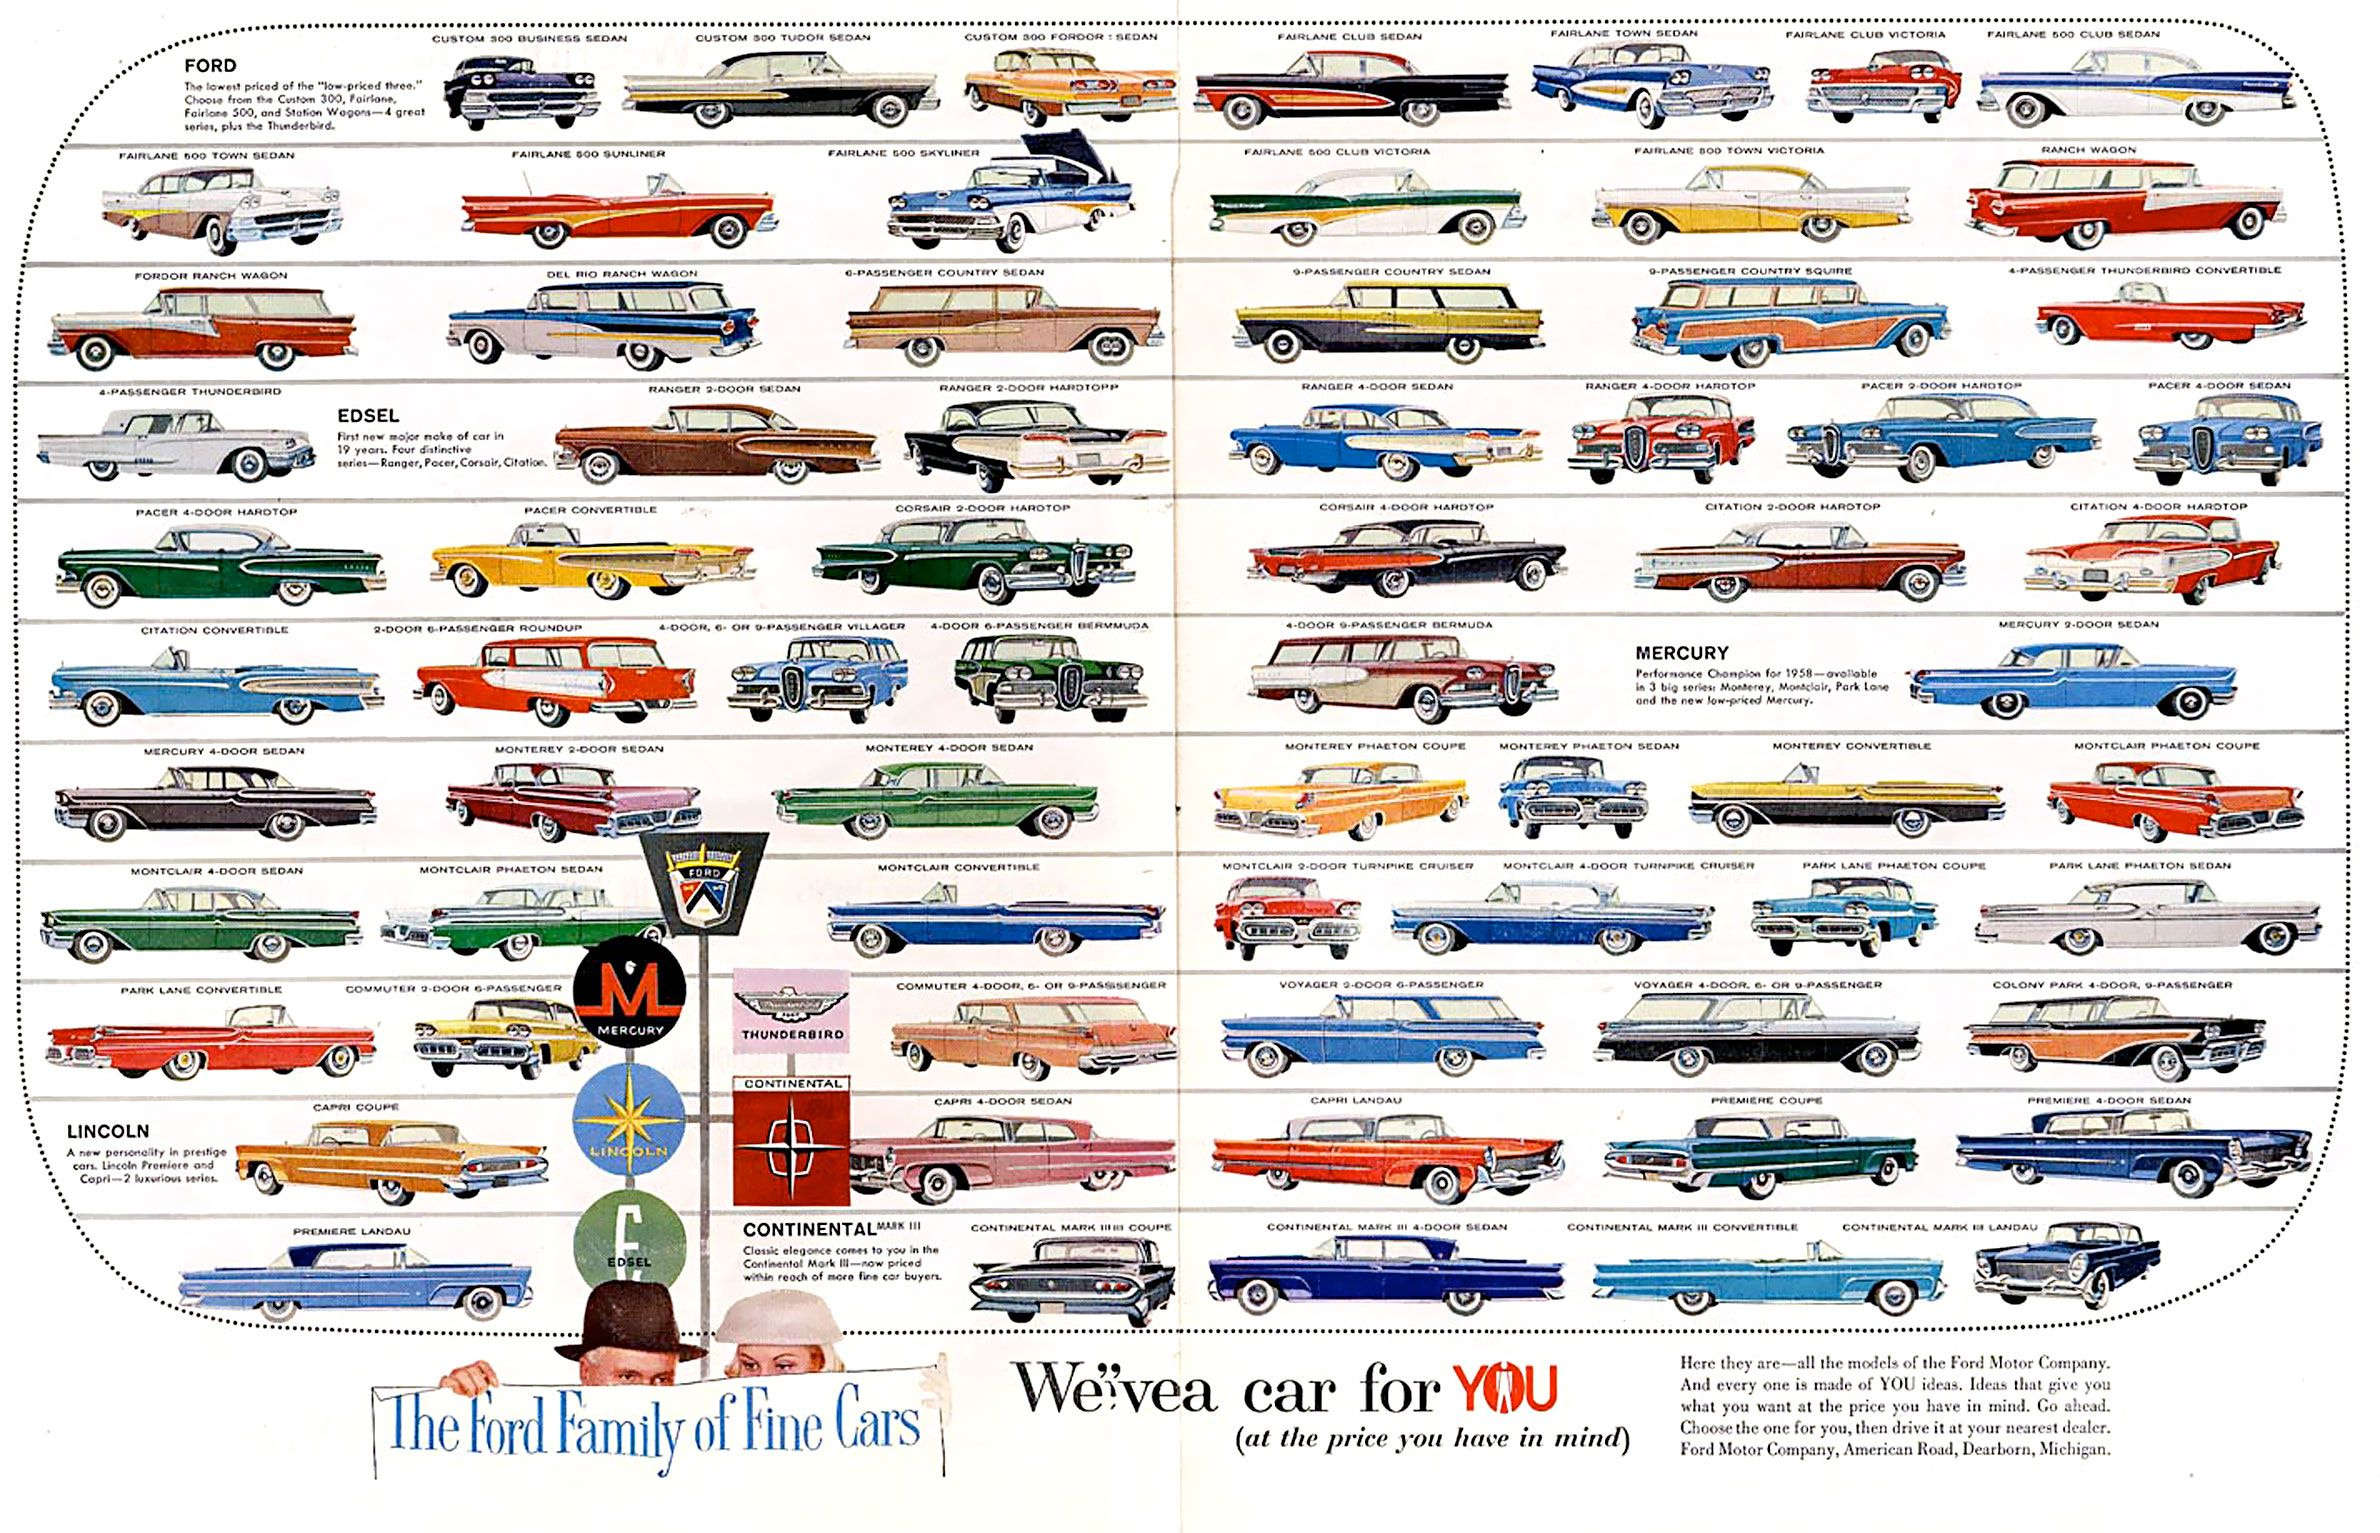 all ford models in 1958 scanned from brochure